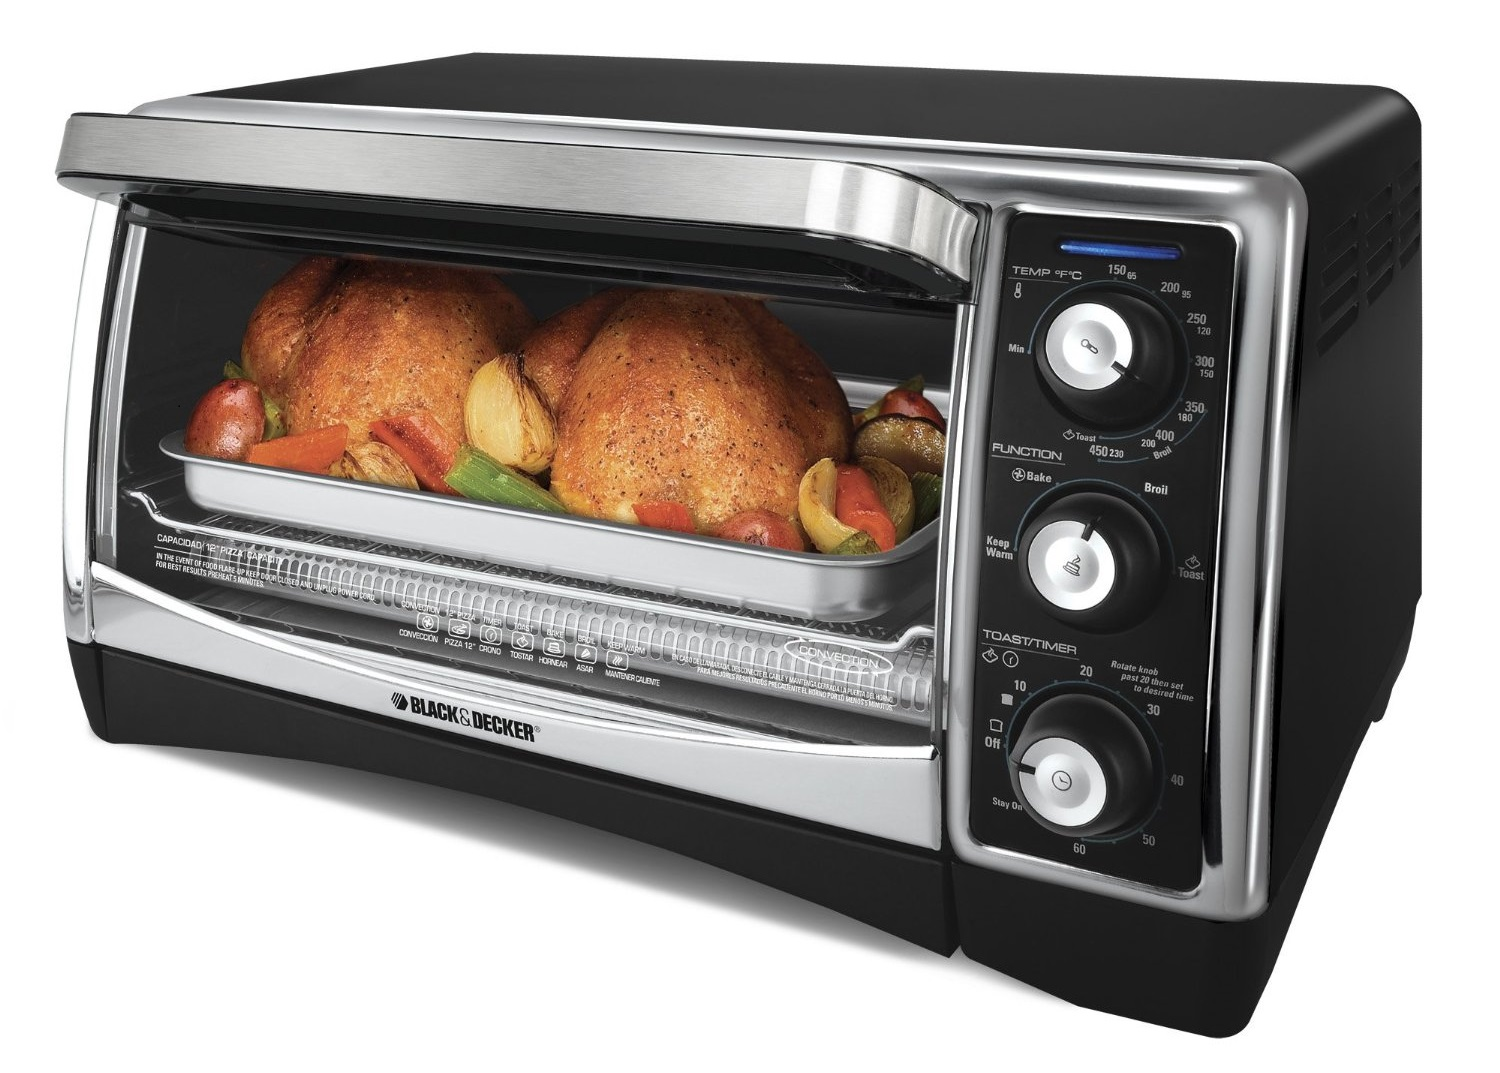 Black Amp Decker To1640b 6 Slice Toaster Oven